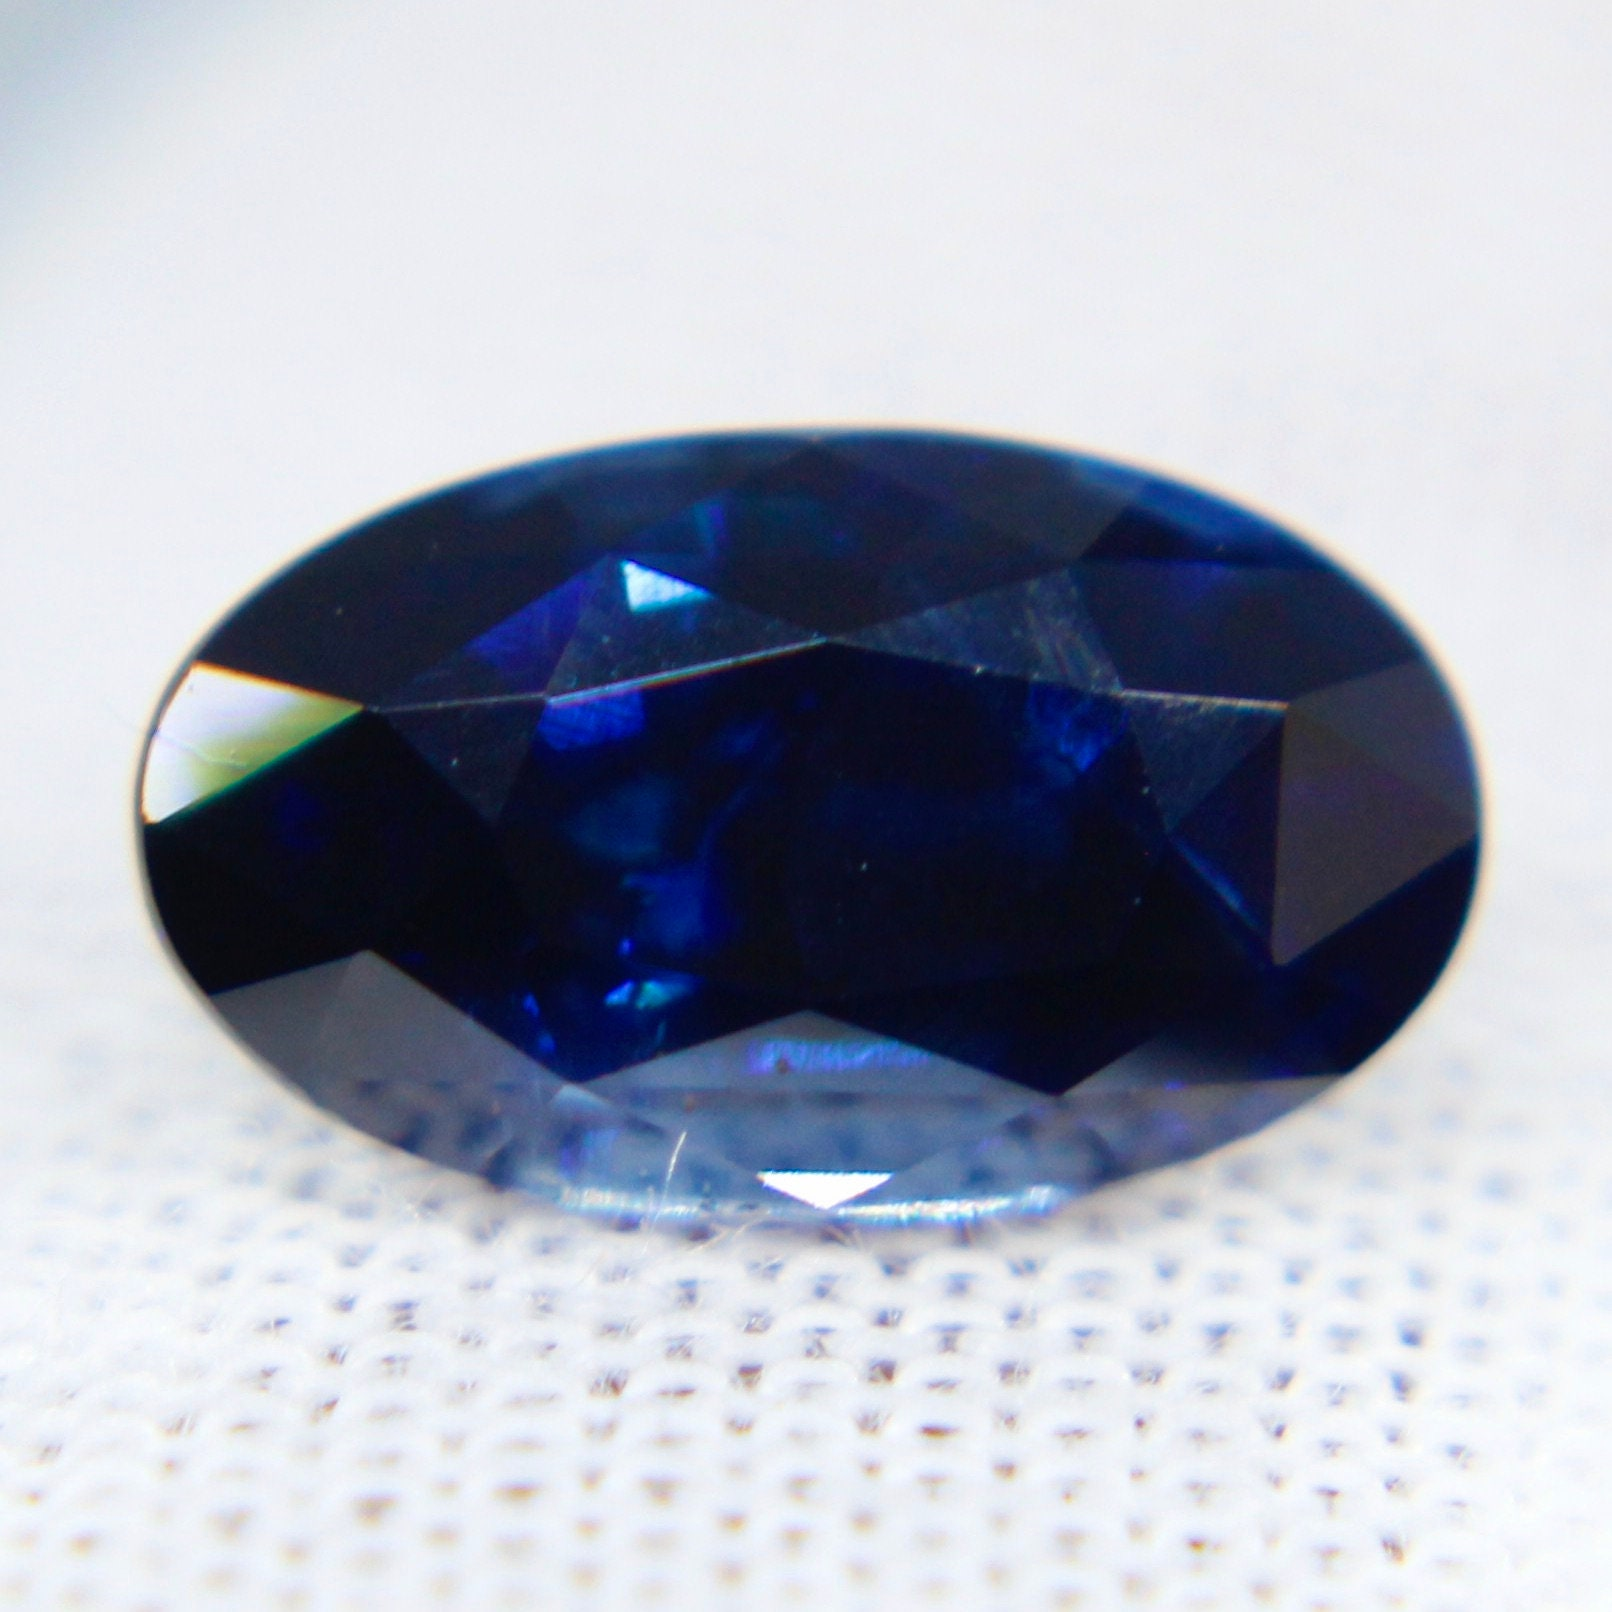 Deep Pastel Blue Loos Gemstone 3.20 Carats Natural Blue Sapphire Faceted 9x7x5 MM Oval Deep Blue Color Normal Cutting BS-6.